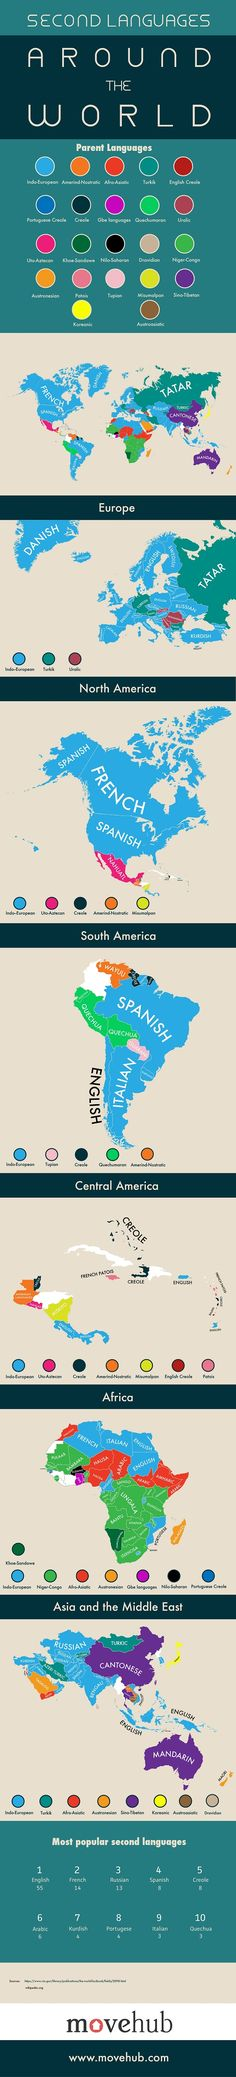 Global Second Languages